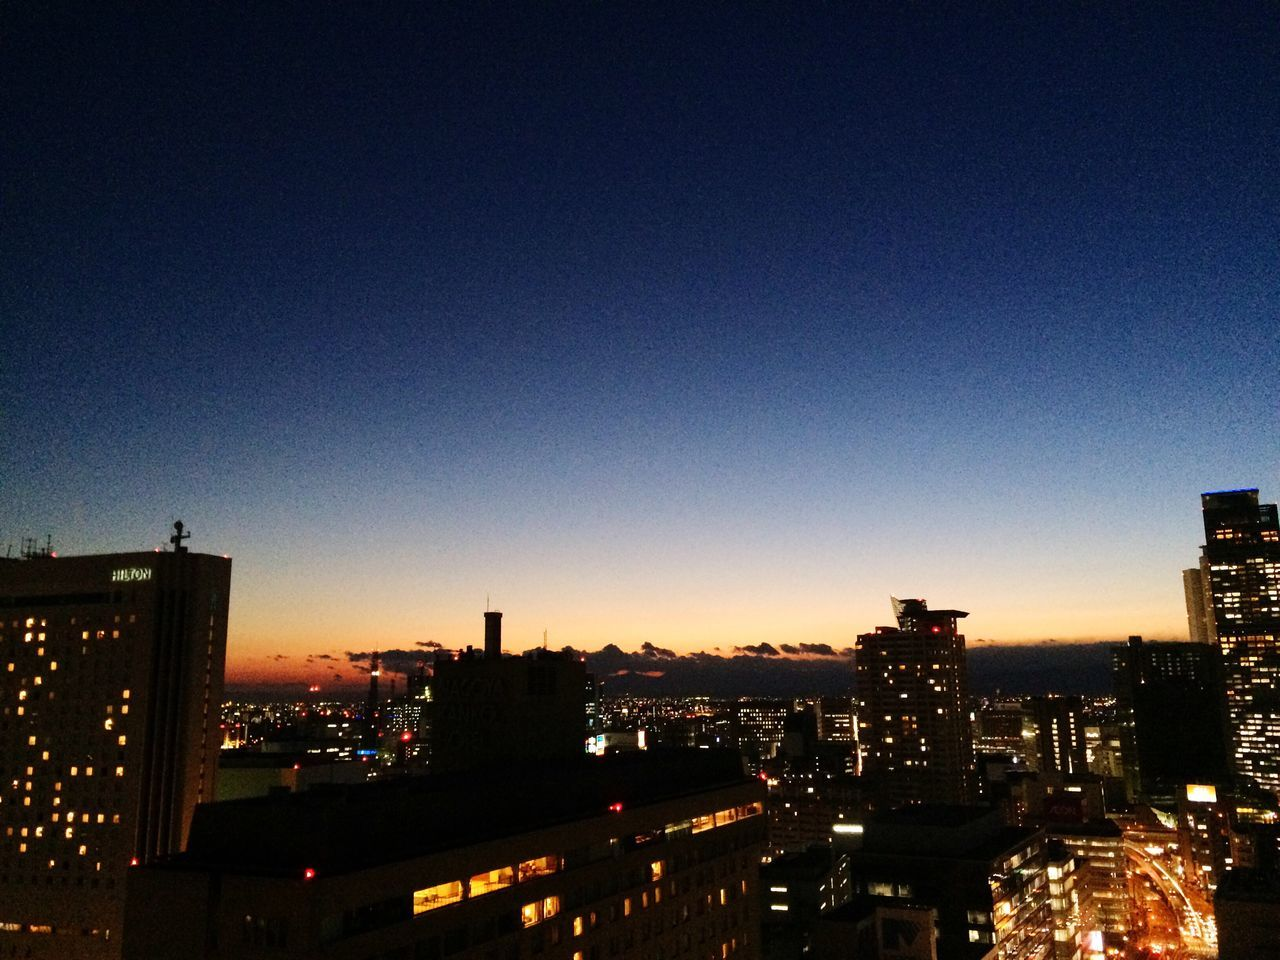 illuminated, architecture, building exterior, cityscape, city, built structure, night, skyscraper, no people, clear sky, outdoors, sunset, sky, blue, urban skyline